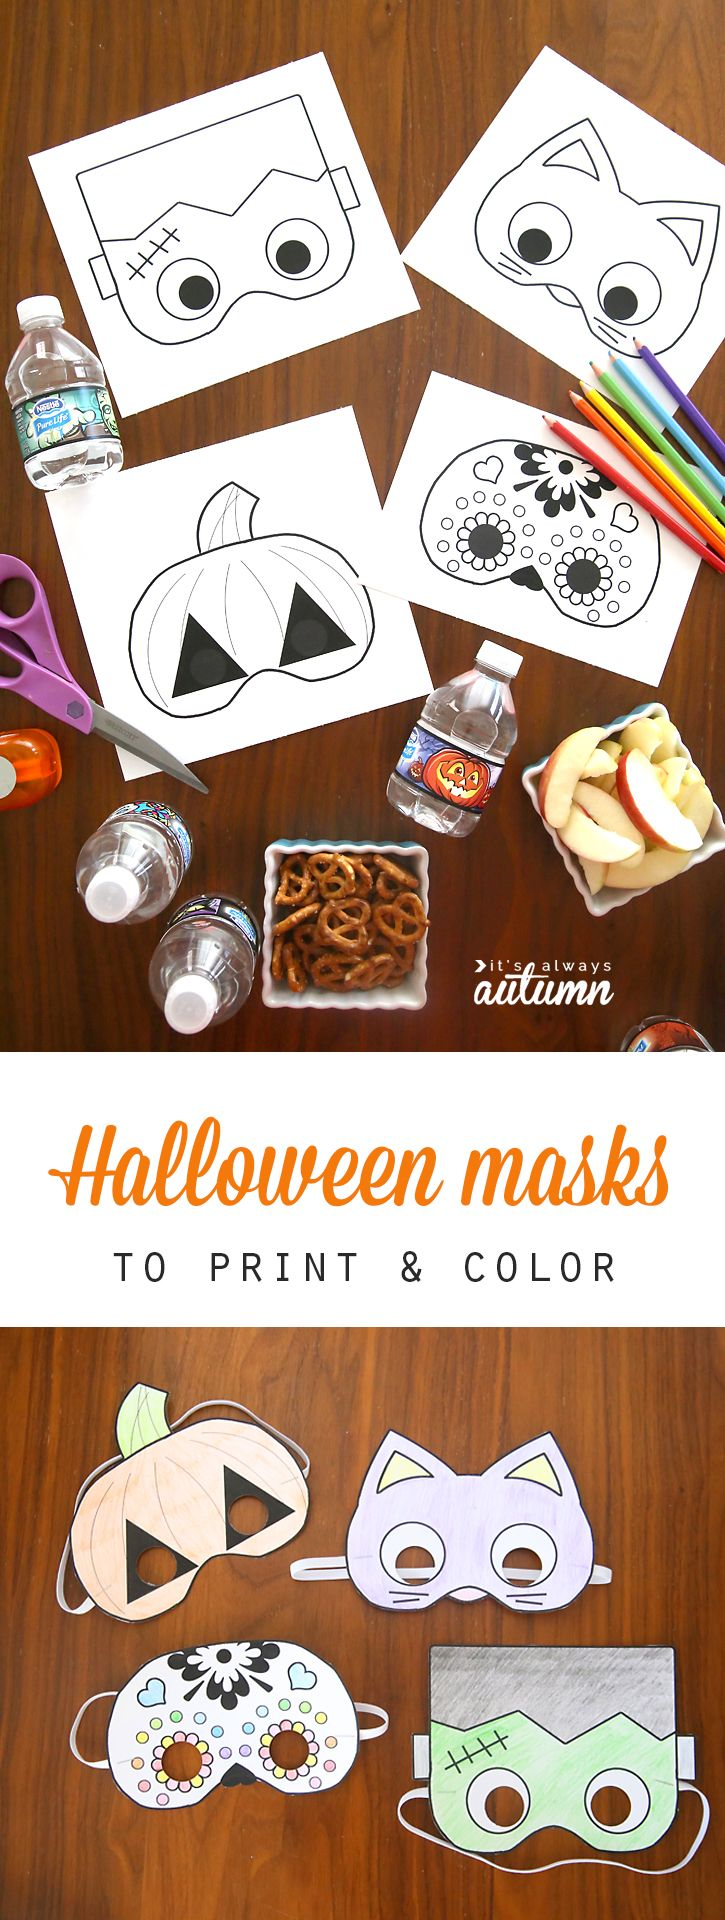 halloween masks to print and color - Halloween Arts And Crafts For Kids Pinterest